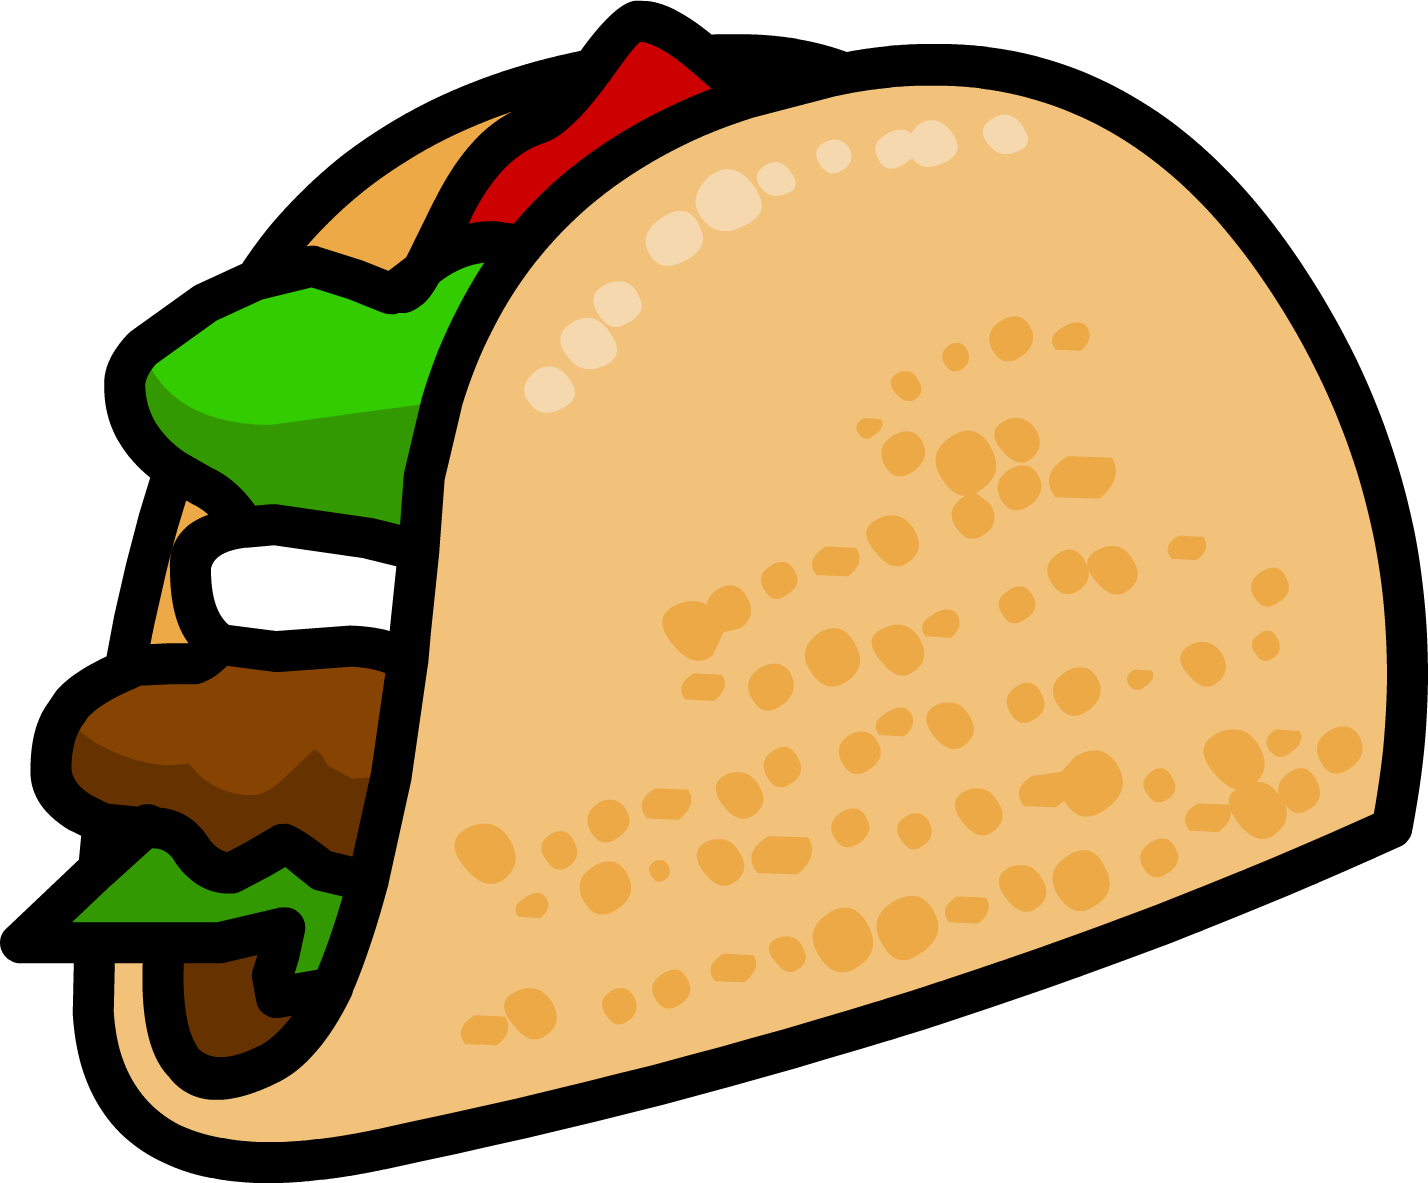 Clipart tacos clipart transparent library Free Tacos Cliparts, Download Free Clip Art, Free Clip Art on ... clipart transparent library